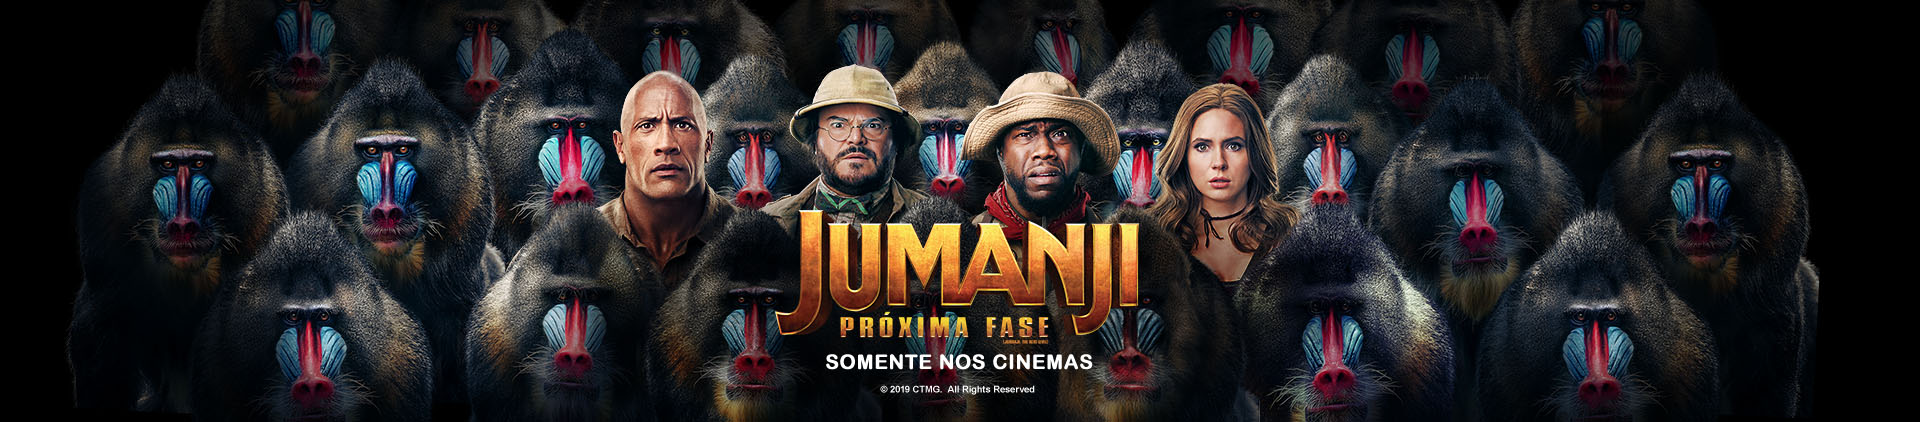 Imagem do filme Jumanji com o logo do filme